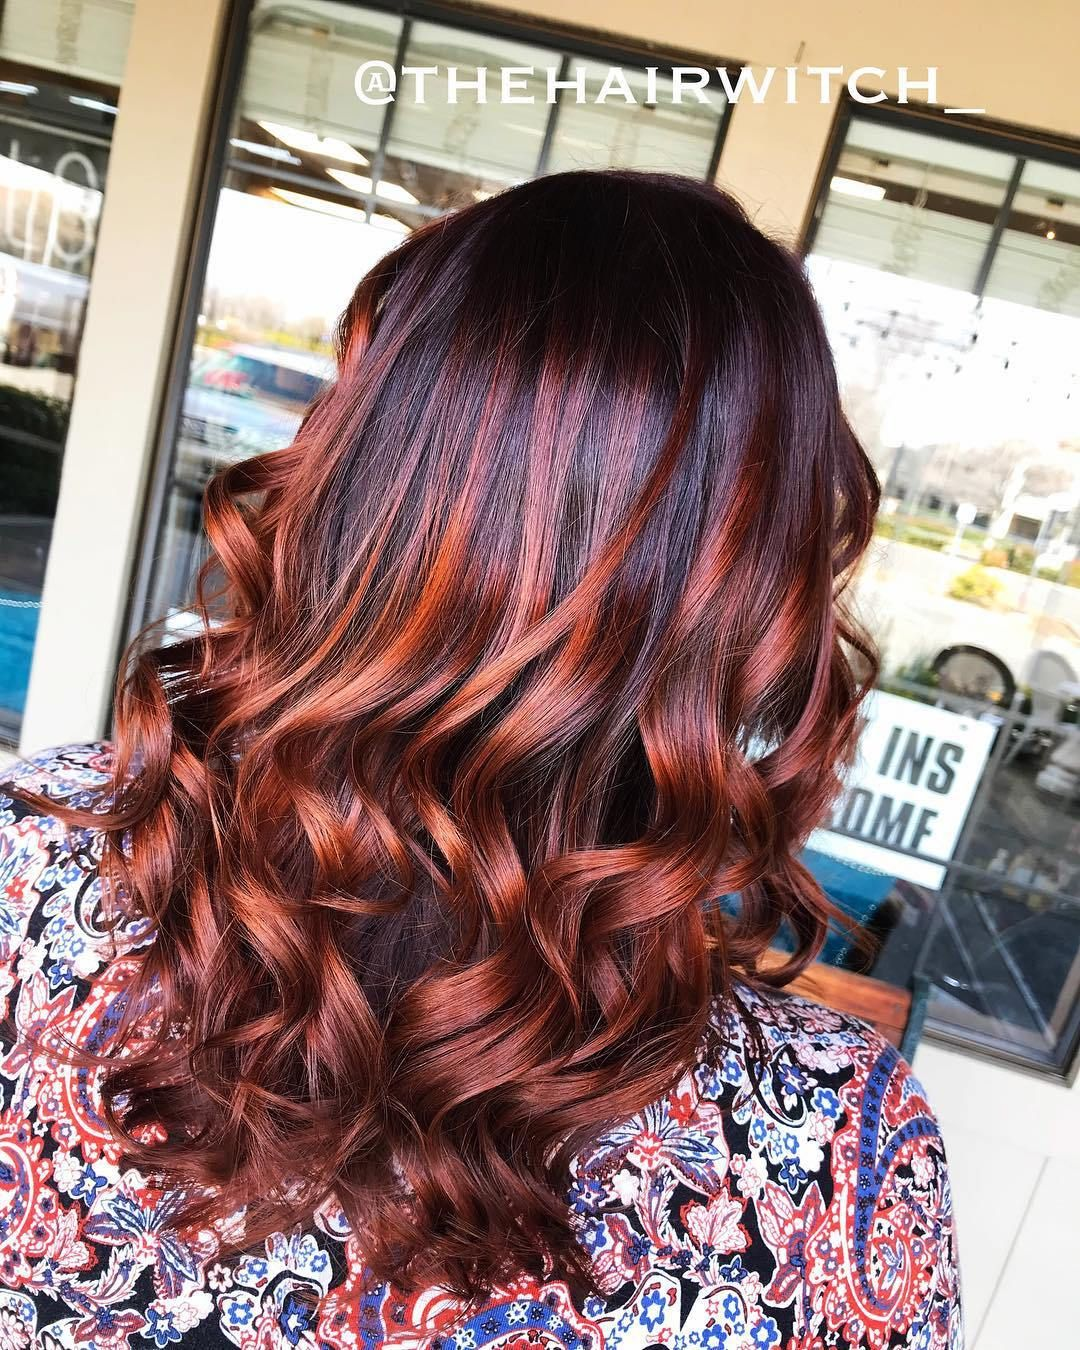 Dark Brown Hair With Copper Highlights Red Highlights In Brown Hair Brown Blonde Hair Copper Highlights On Brown Hair